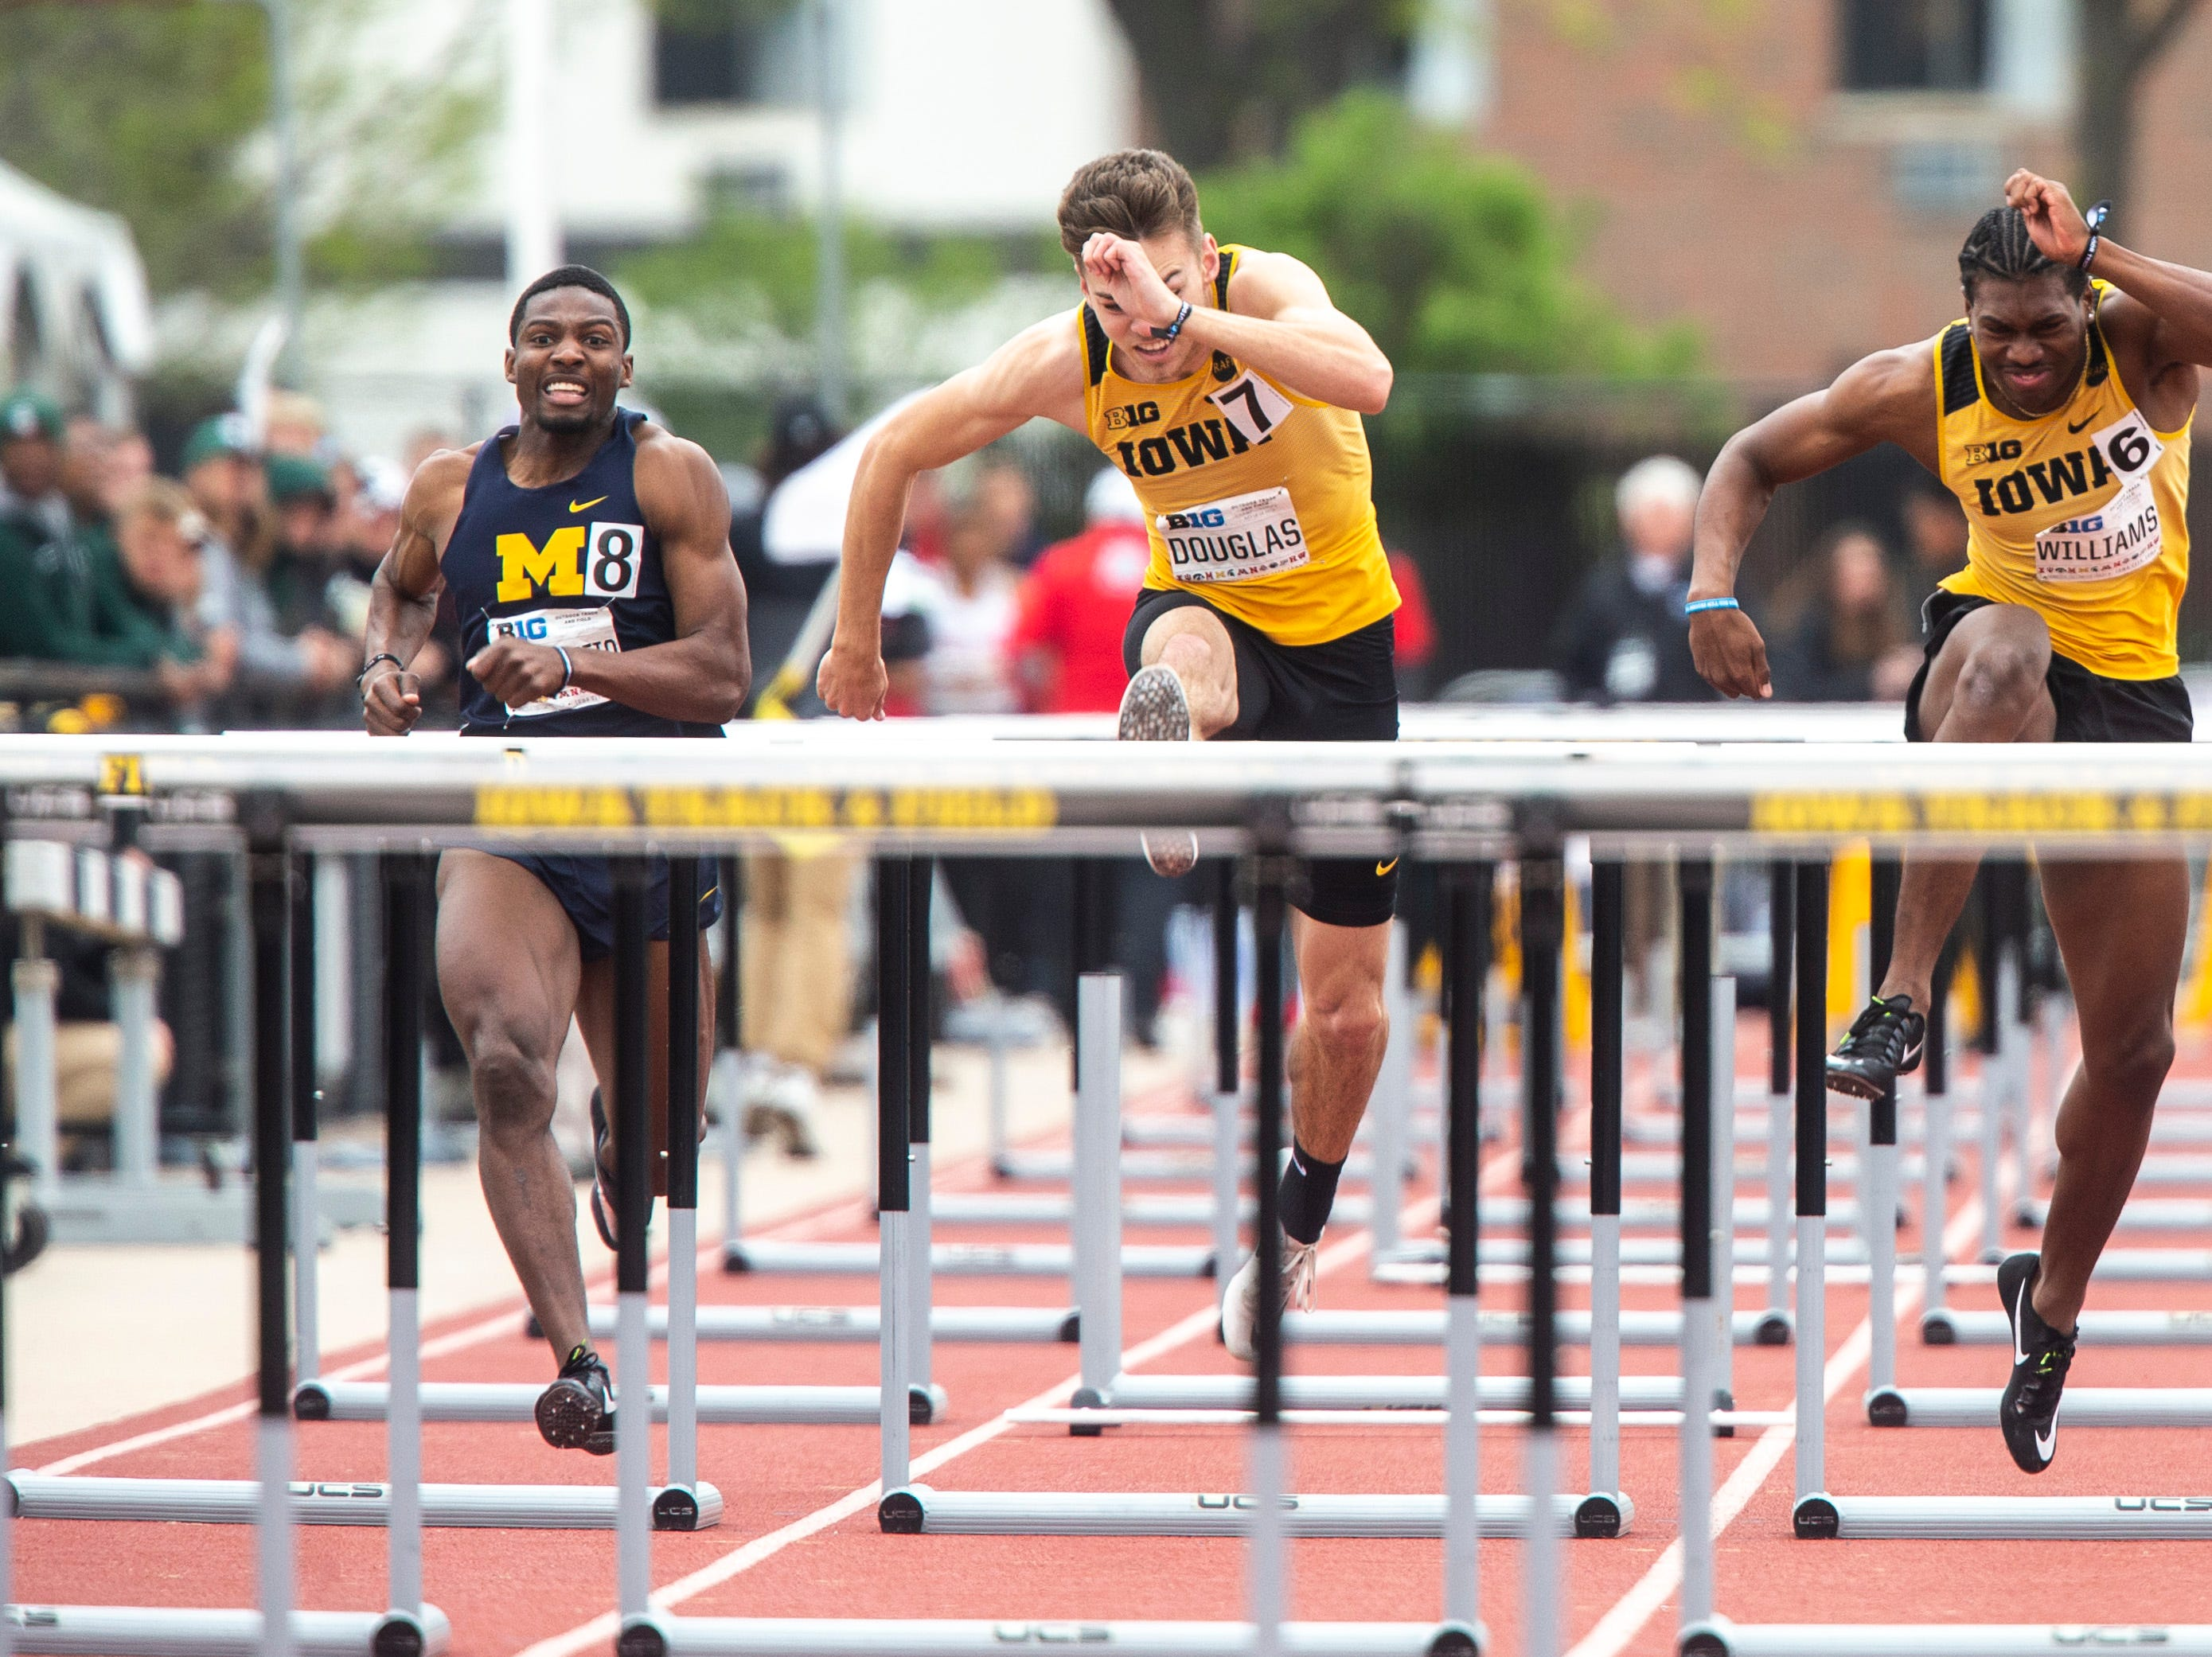 Iowa senior Chris Douglas (7) clears a hurdle next to teammate Anthony Williams (6) while they compete in the 110 meter high hurdles during the final day of Big Ten track and field outdoor championships, Sunday, May 12, 2019, at Francis X. Cretzmeyer Track on the University of Iowa campus in Iowa City, Iowa. Douglas finished fifth, with a time of 13.93. Williams finished third, with a time of 13.81.